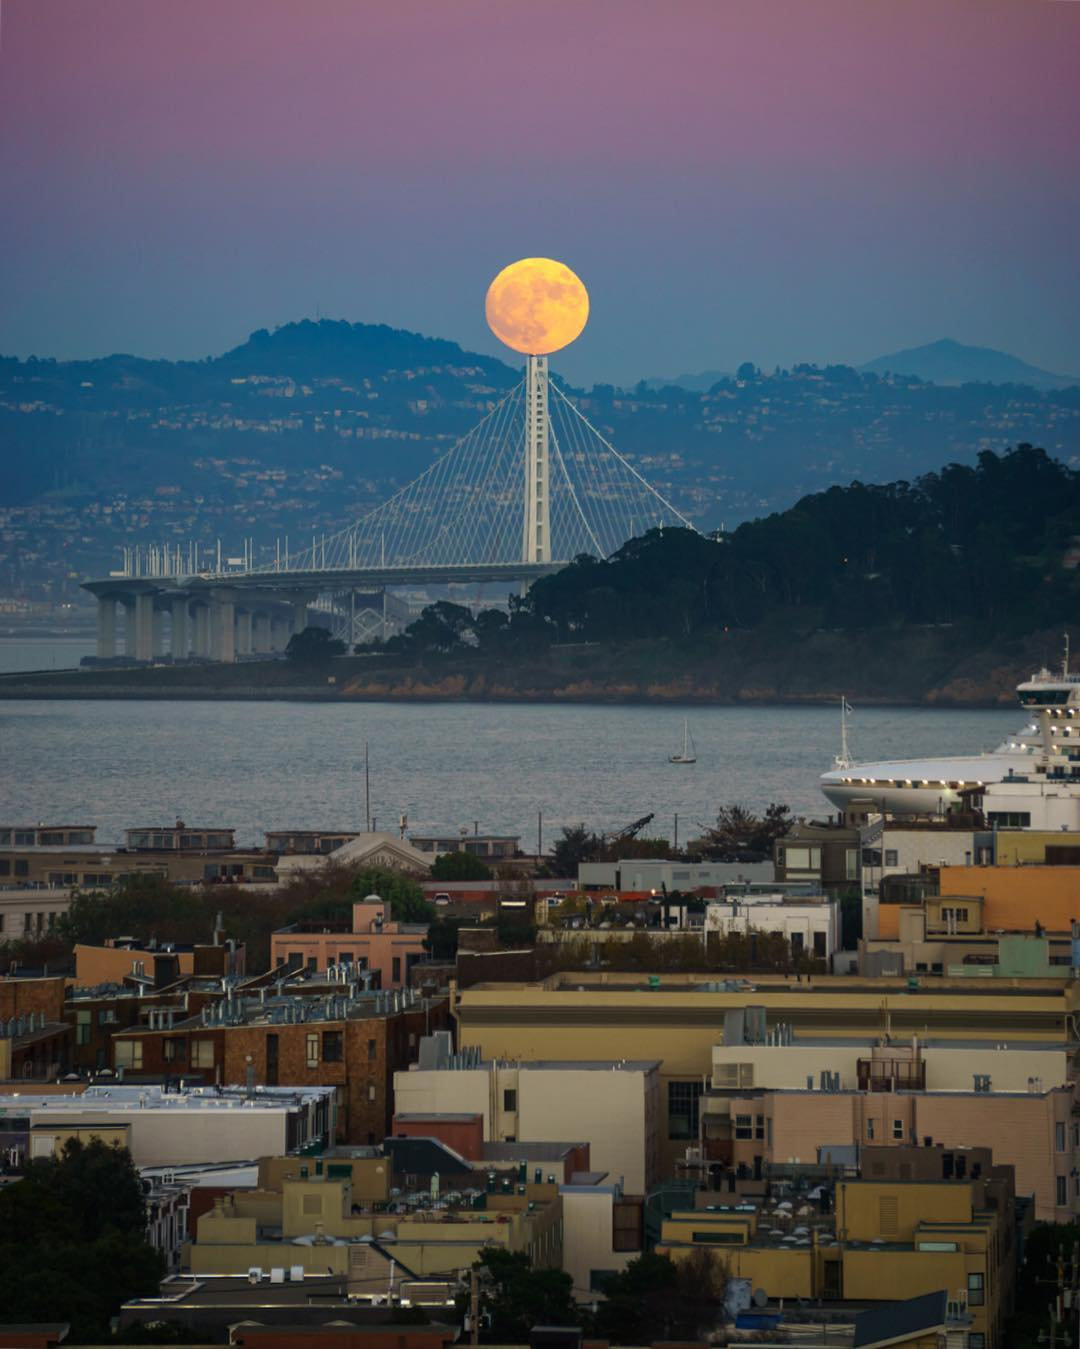 "<div class=""meta image-caption""><div class=""origin-logo origin-image none""><span>none</span></div><span class=""caption-text"">The supermoon is seen near the  Bay Bridge on Nov. 13, 2016. (Instagram/lucsteven)</span></div>"